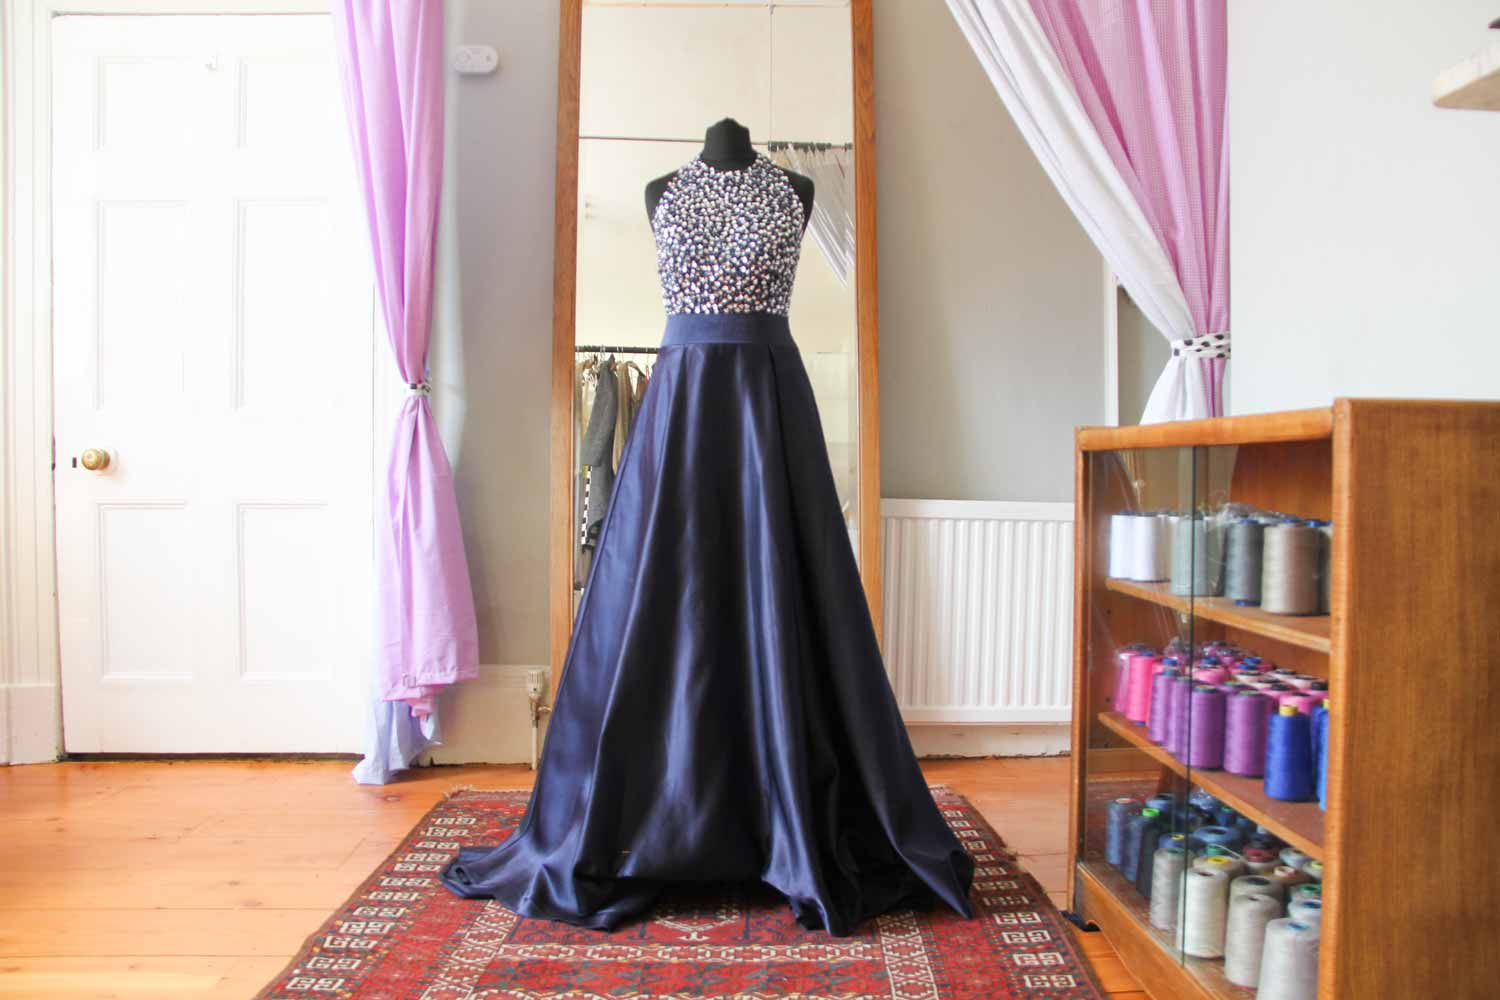 Sequin-Prom-Dress-Alteration-by-AnyAlterations.com-02